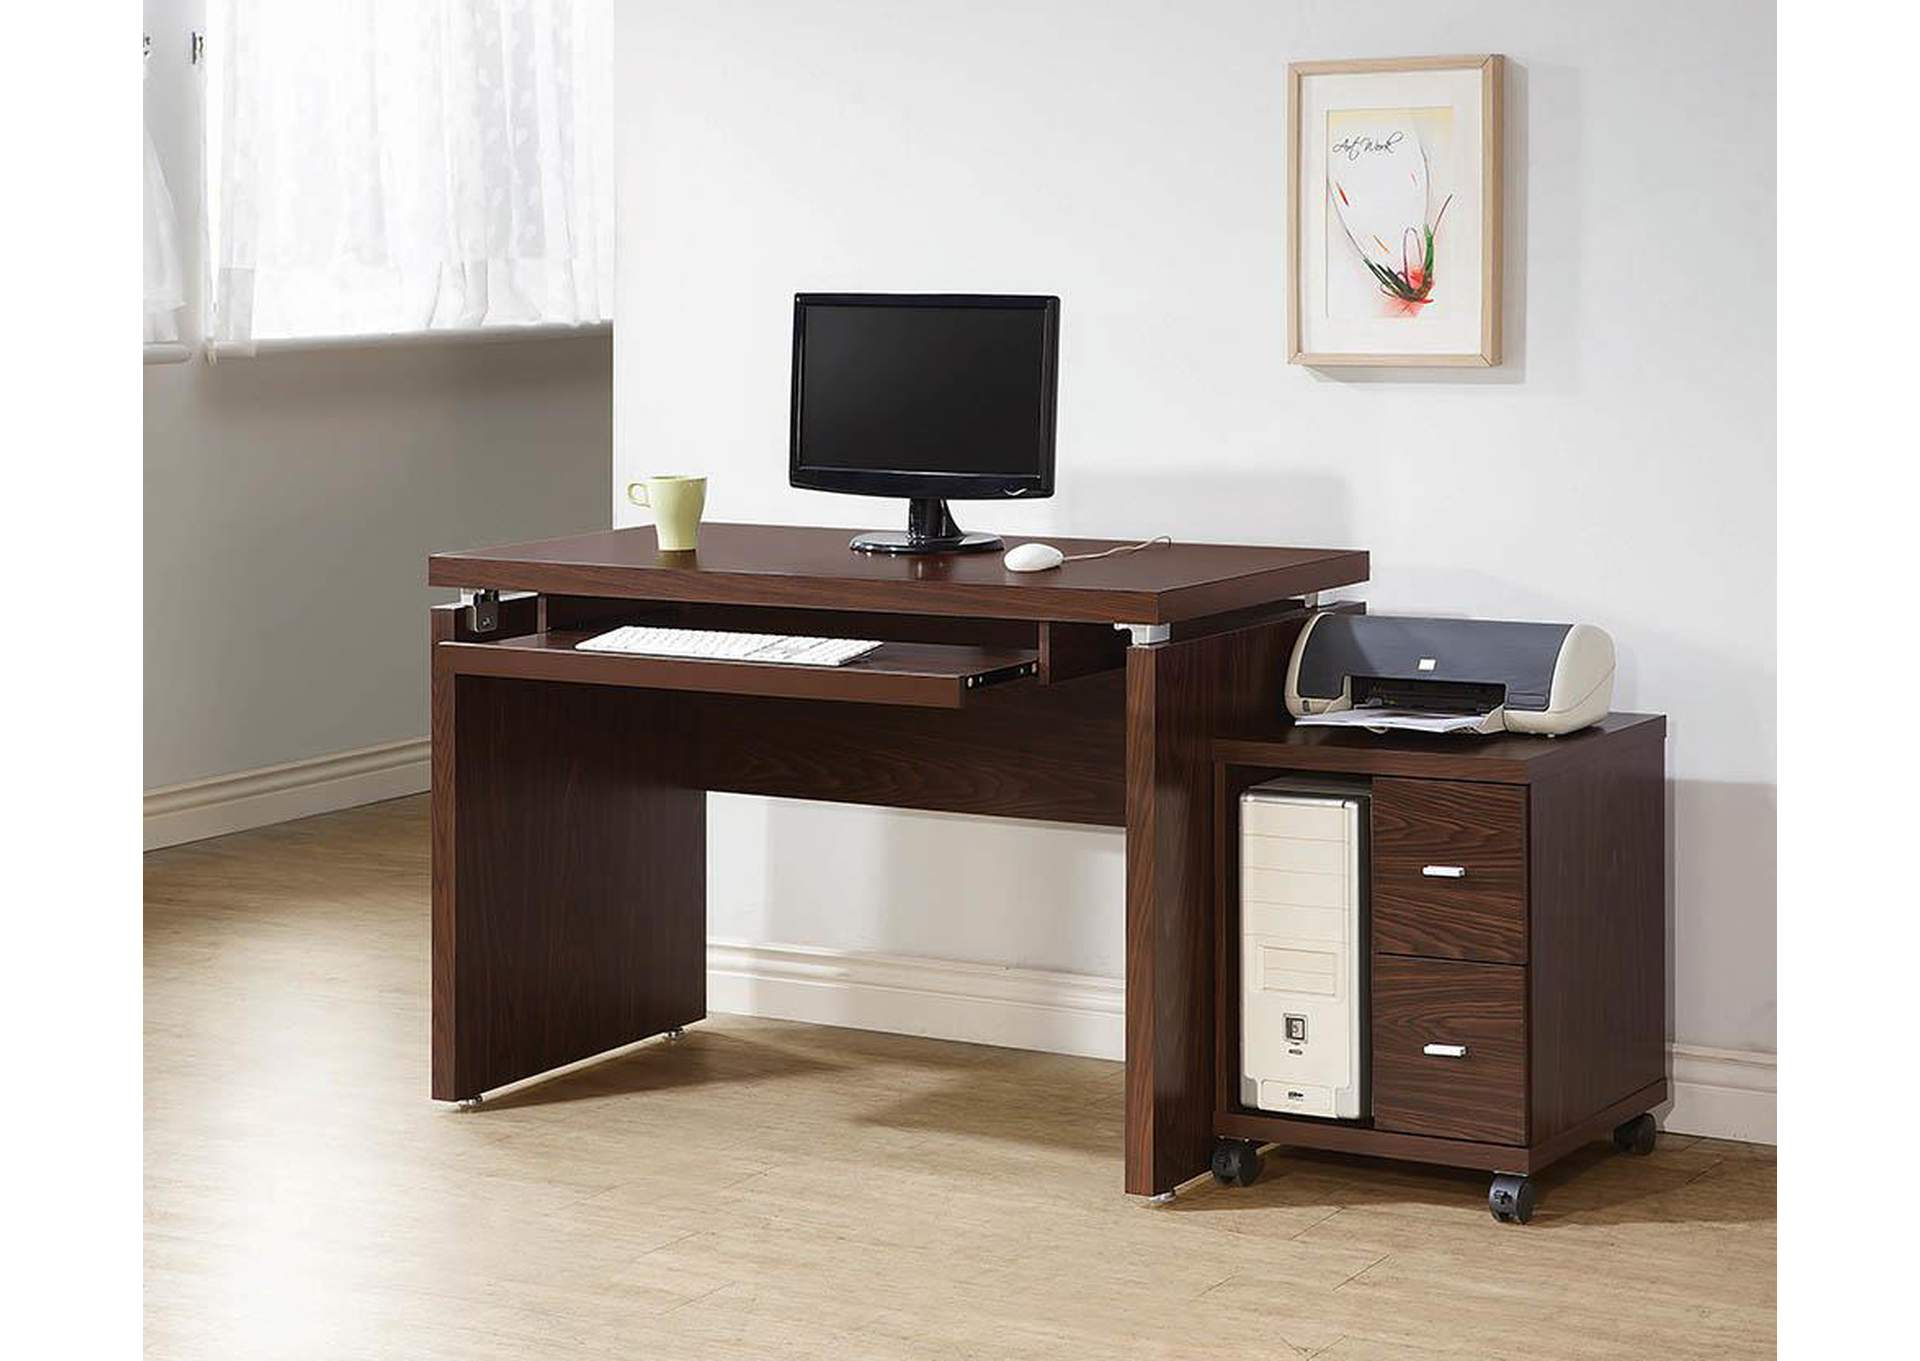 Medium Oak Computer Stand,Coaster Furniture